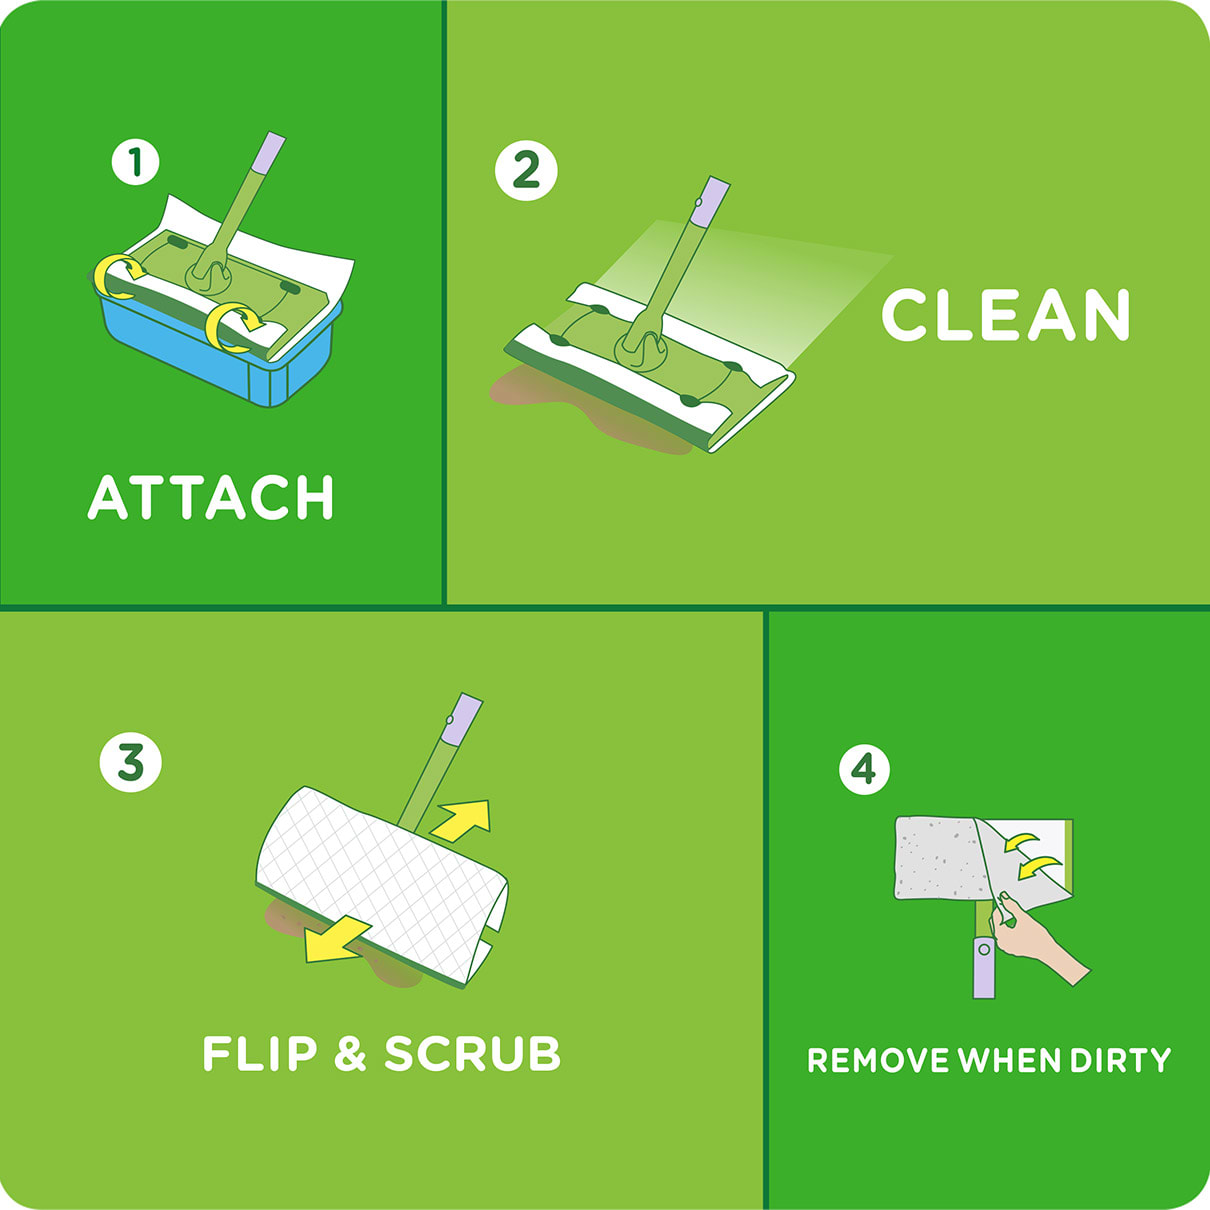 Swiffer Sweeper Instructions Attach, Clean, Flip & Scrub, Remove When Dirty